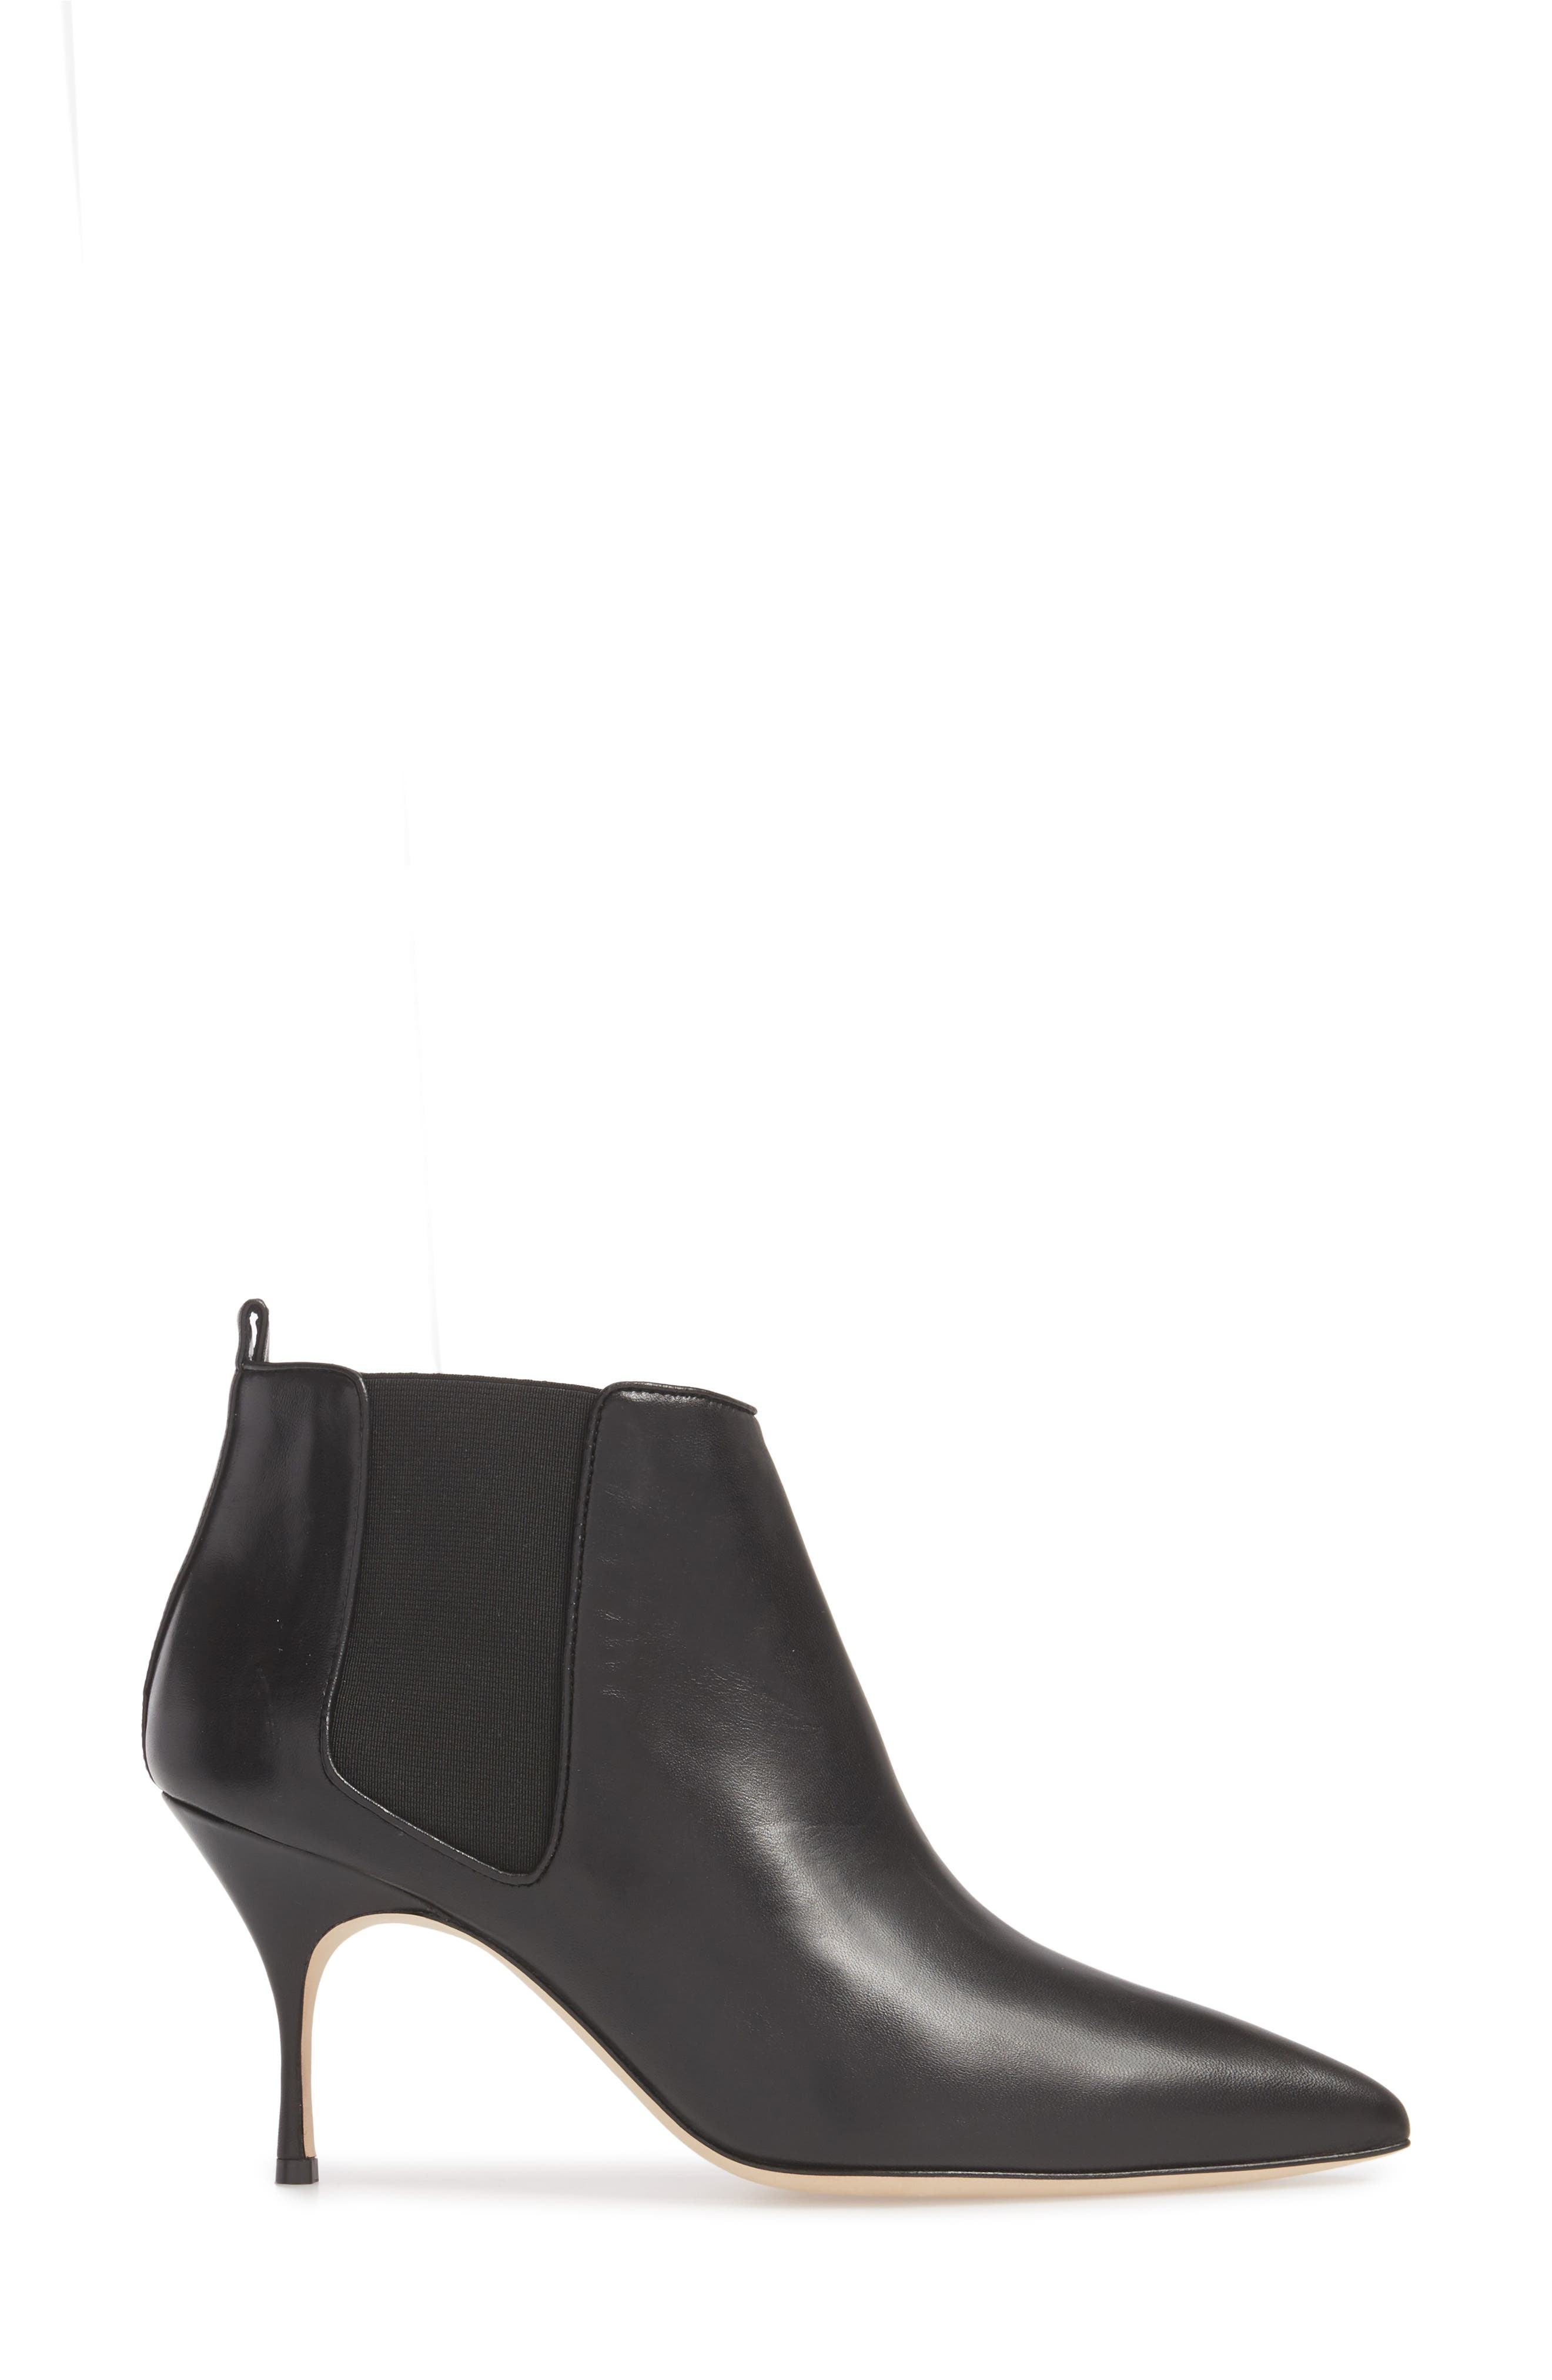 Dildi Pointy Toe Bootie,                             Alternate thumbnail 3, color,                             BLACK LEATHER